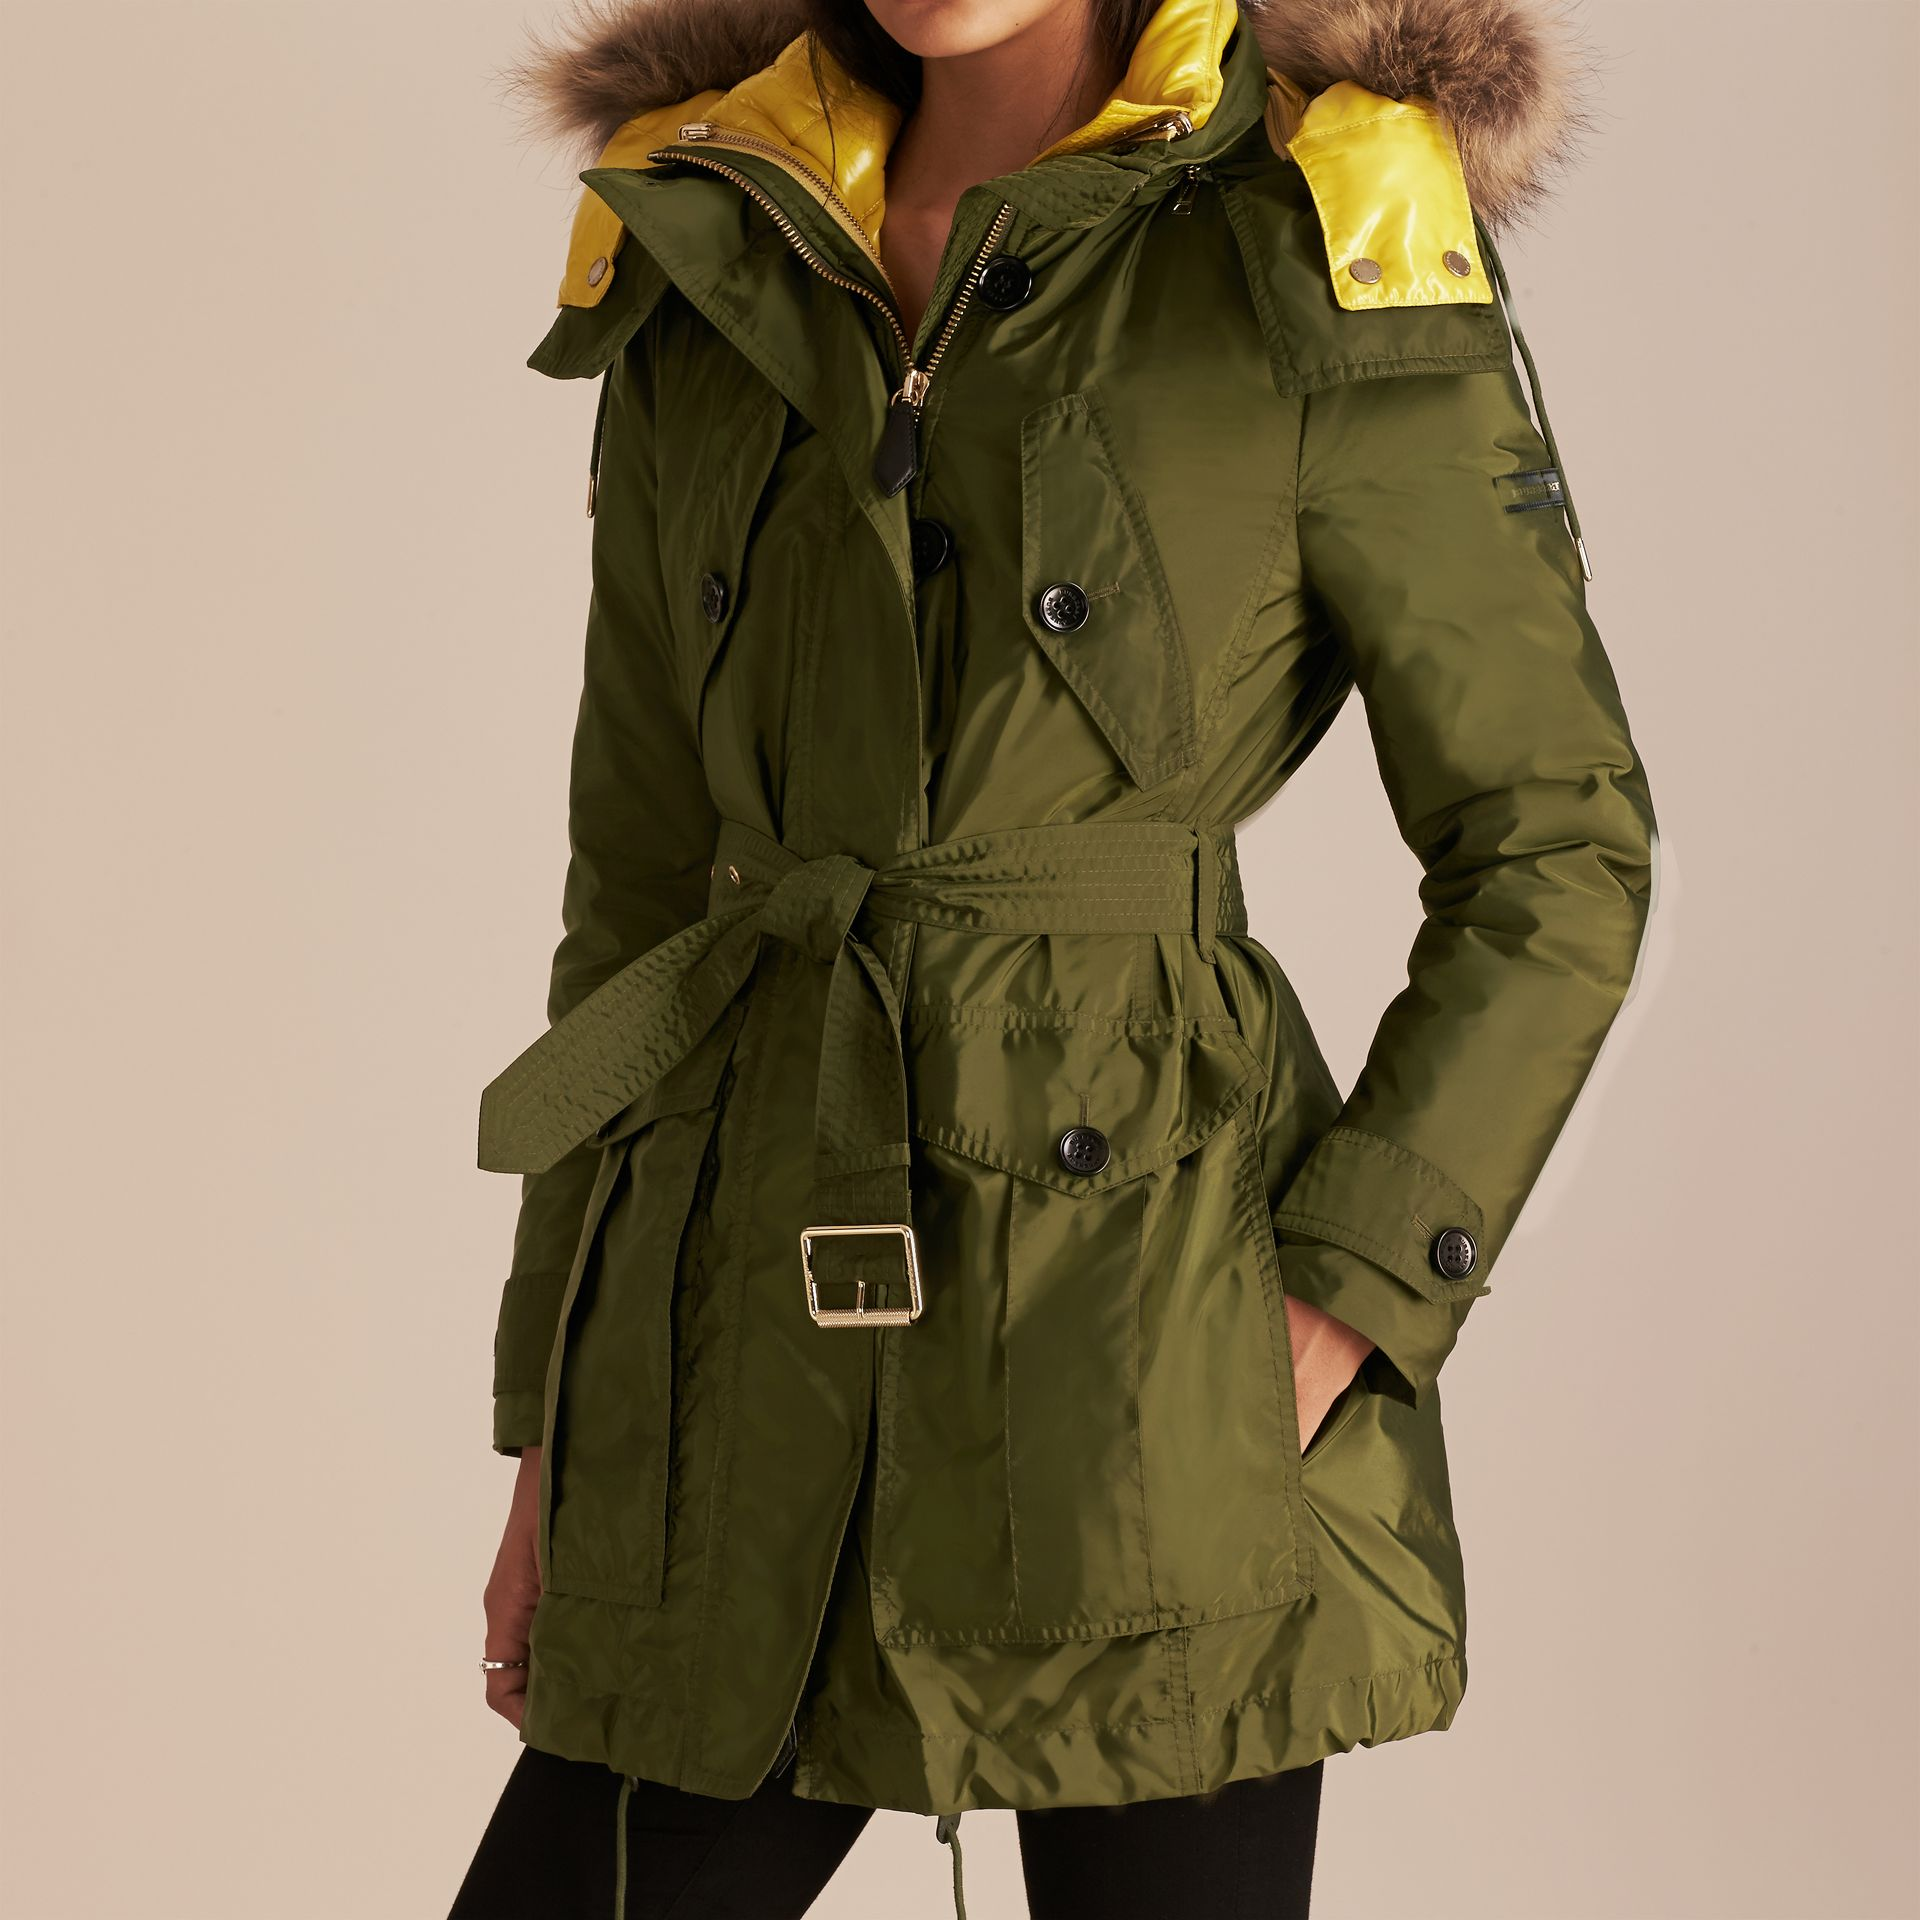 Fur-trimmed Parka with Detachable Down-filled Jacket Bright Moss Green - gallery image 5